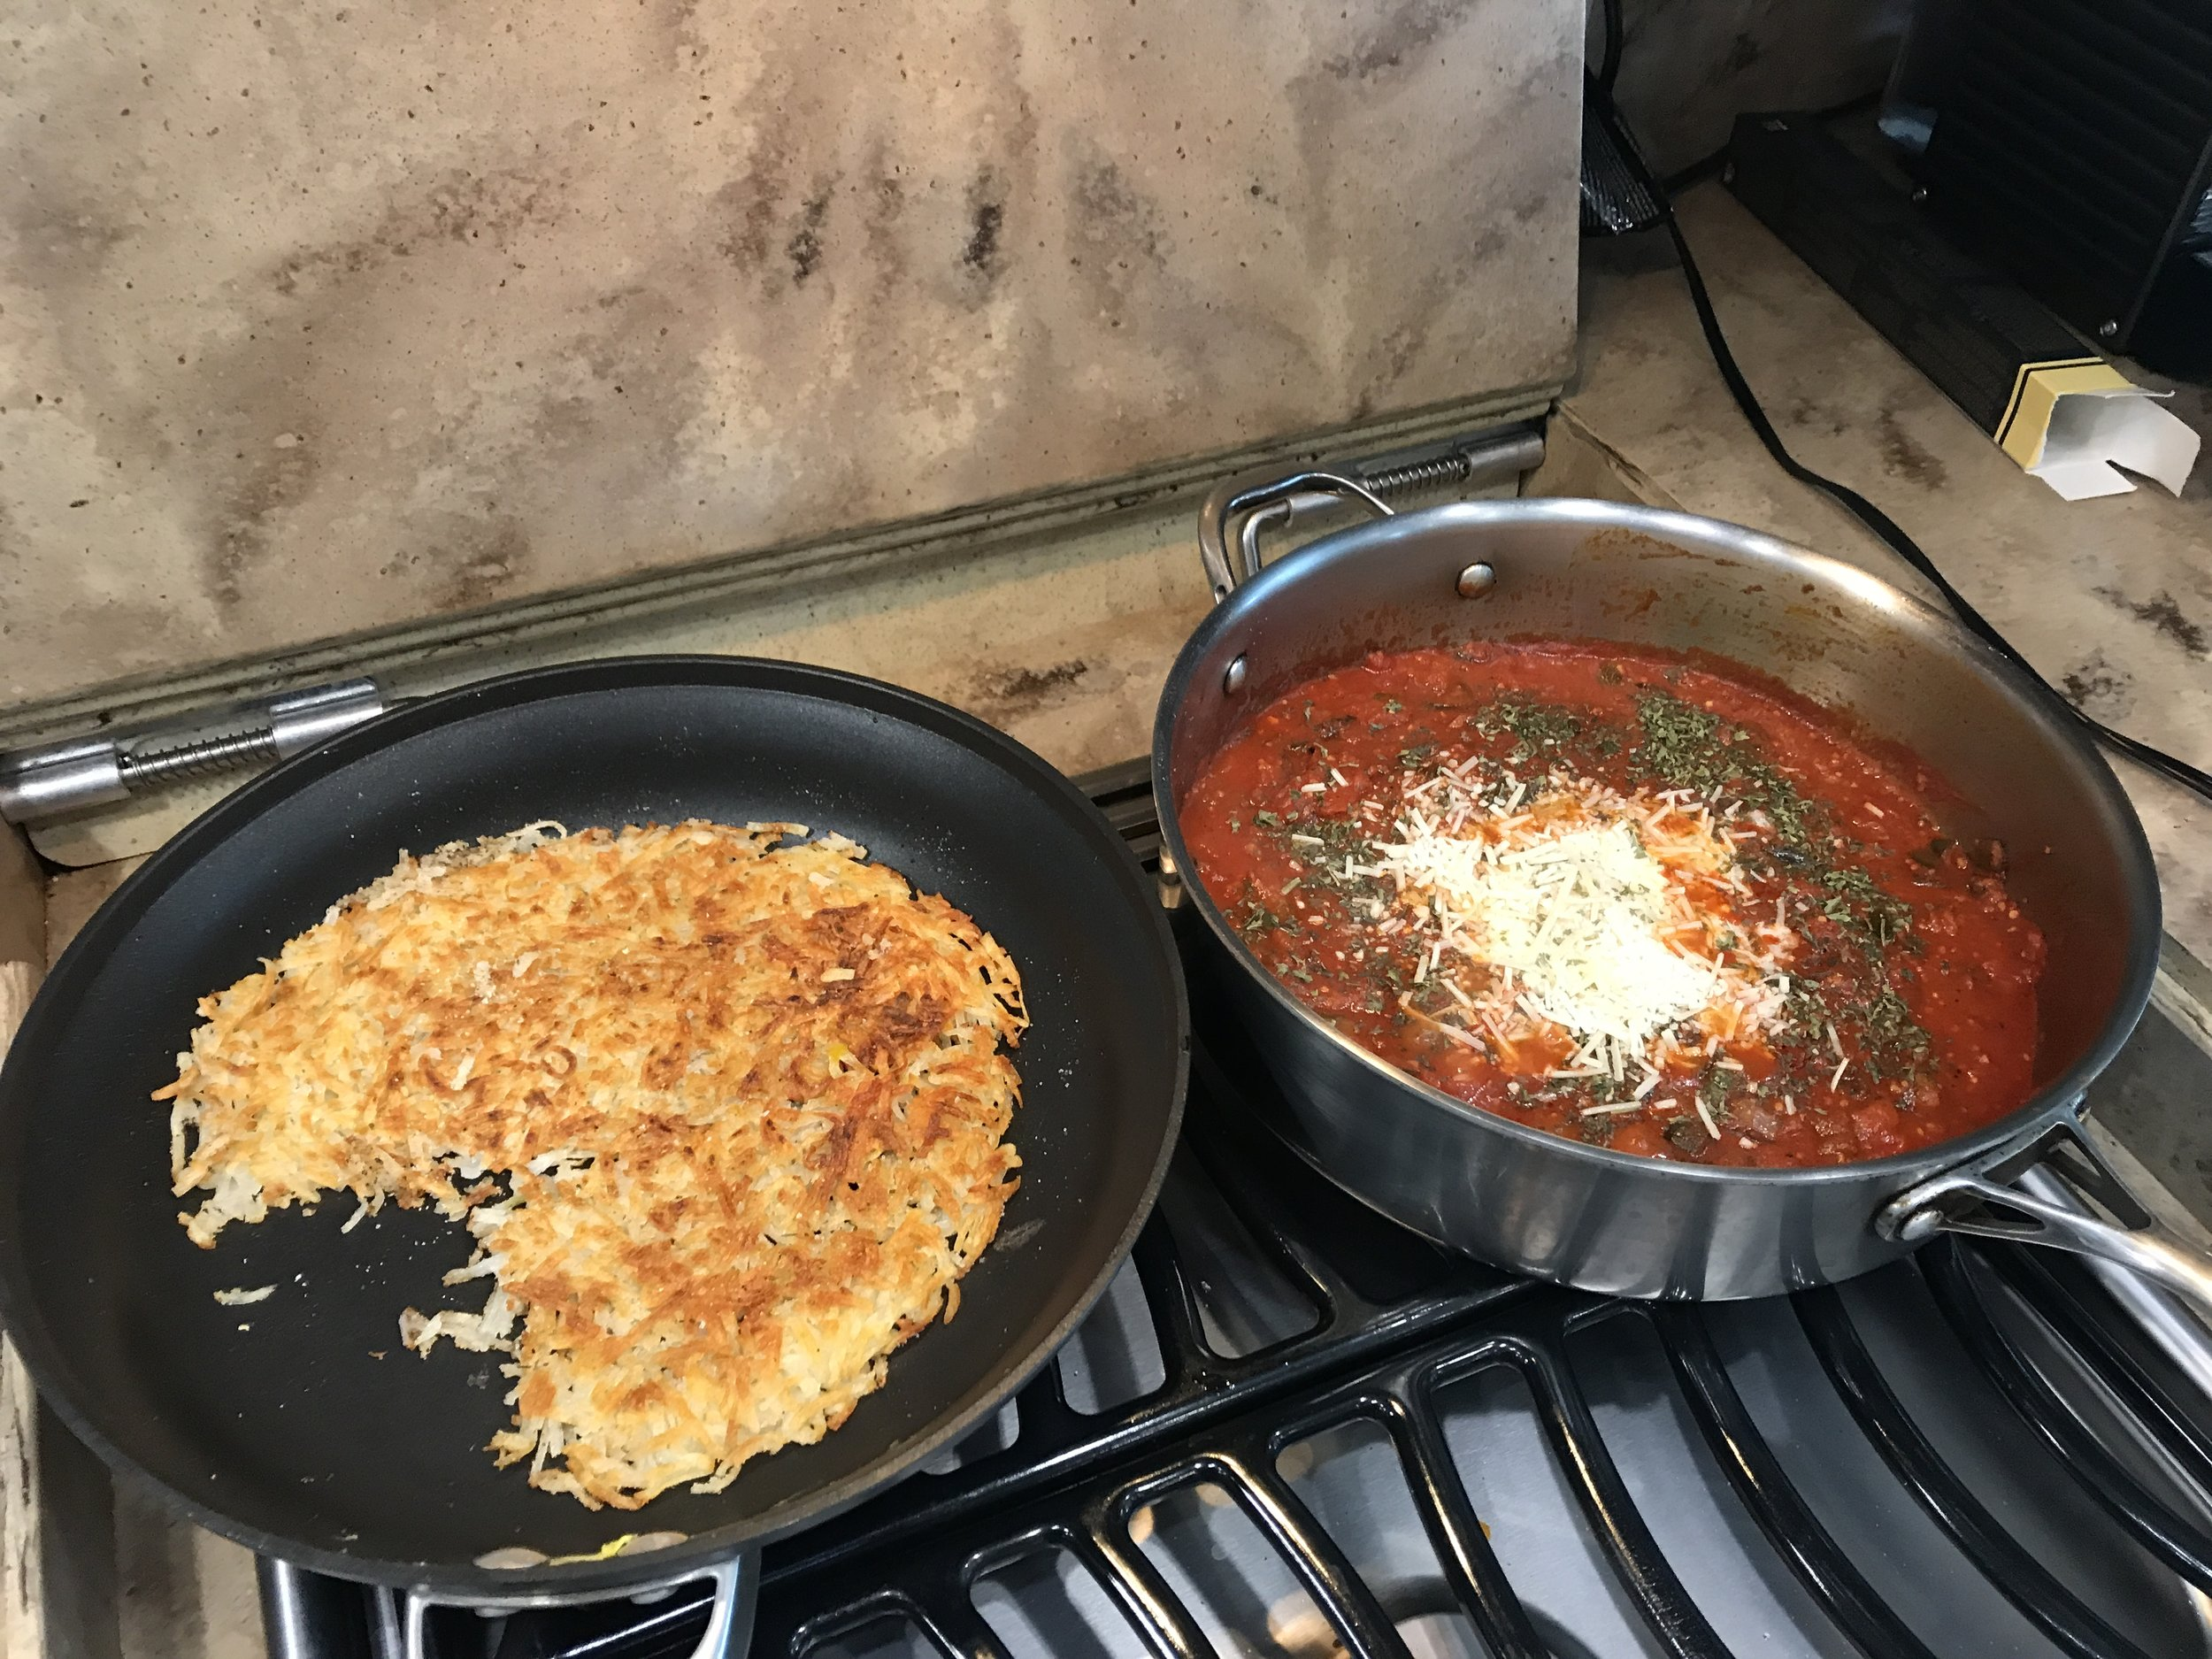 Delicious breakfast of hash browns and shakshouka  to give us energy for the day